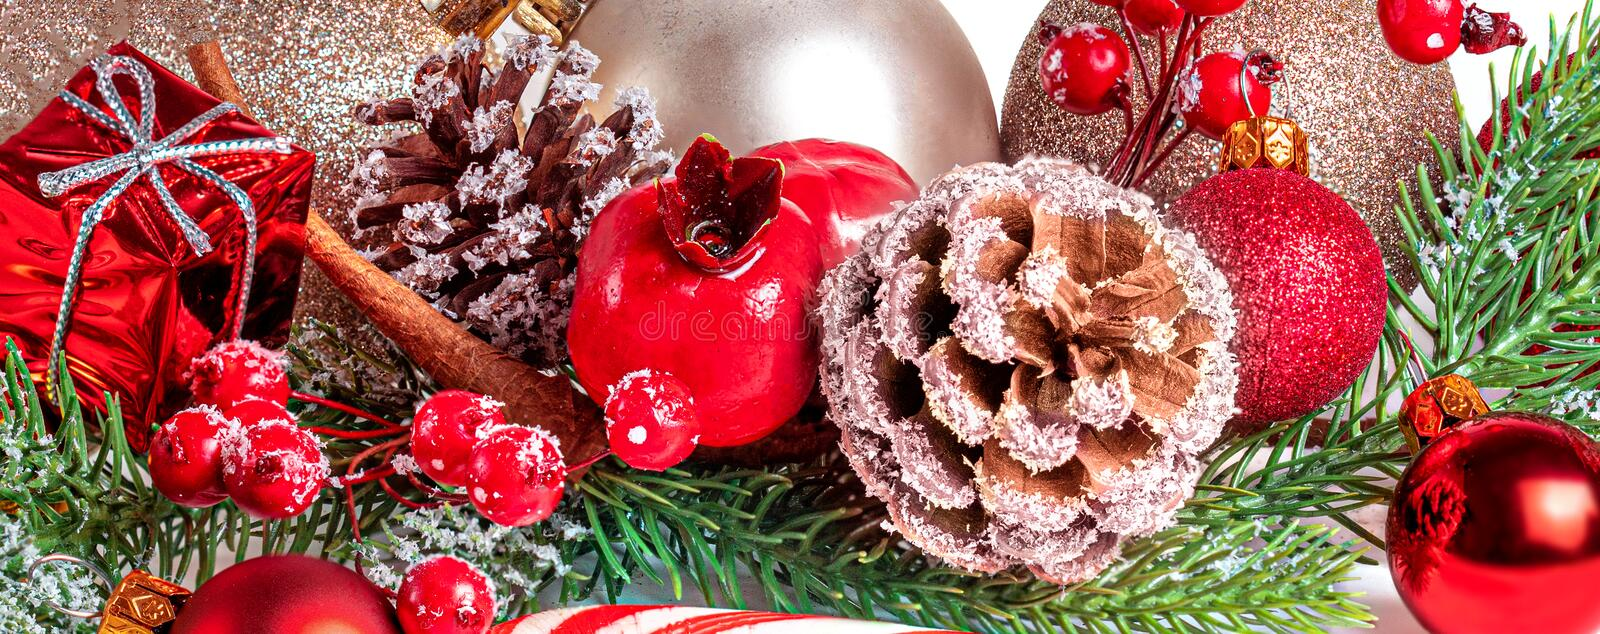 Merry Christmas and Happy Holidays greeting card.  Christmas composition with red ball, fir tree and pine cones. Winter holiday. Theme stock photo